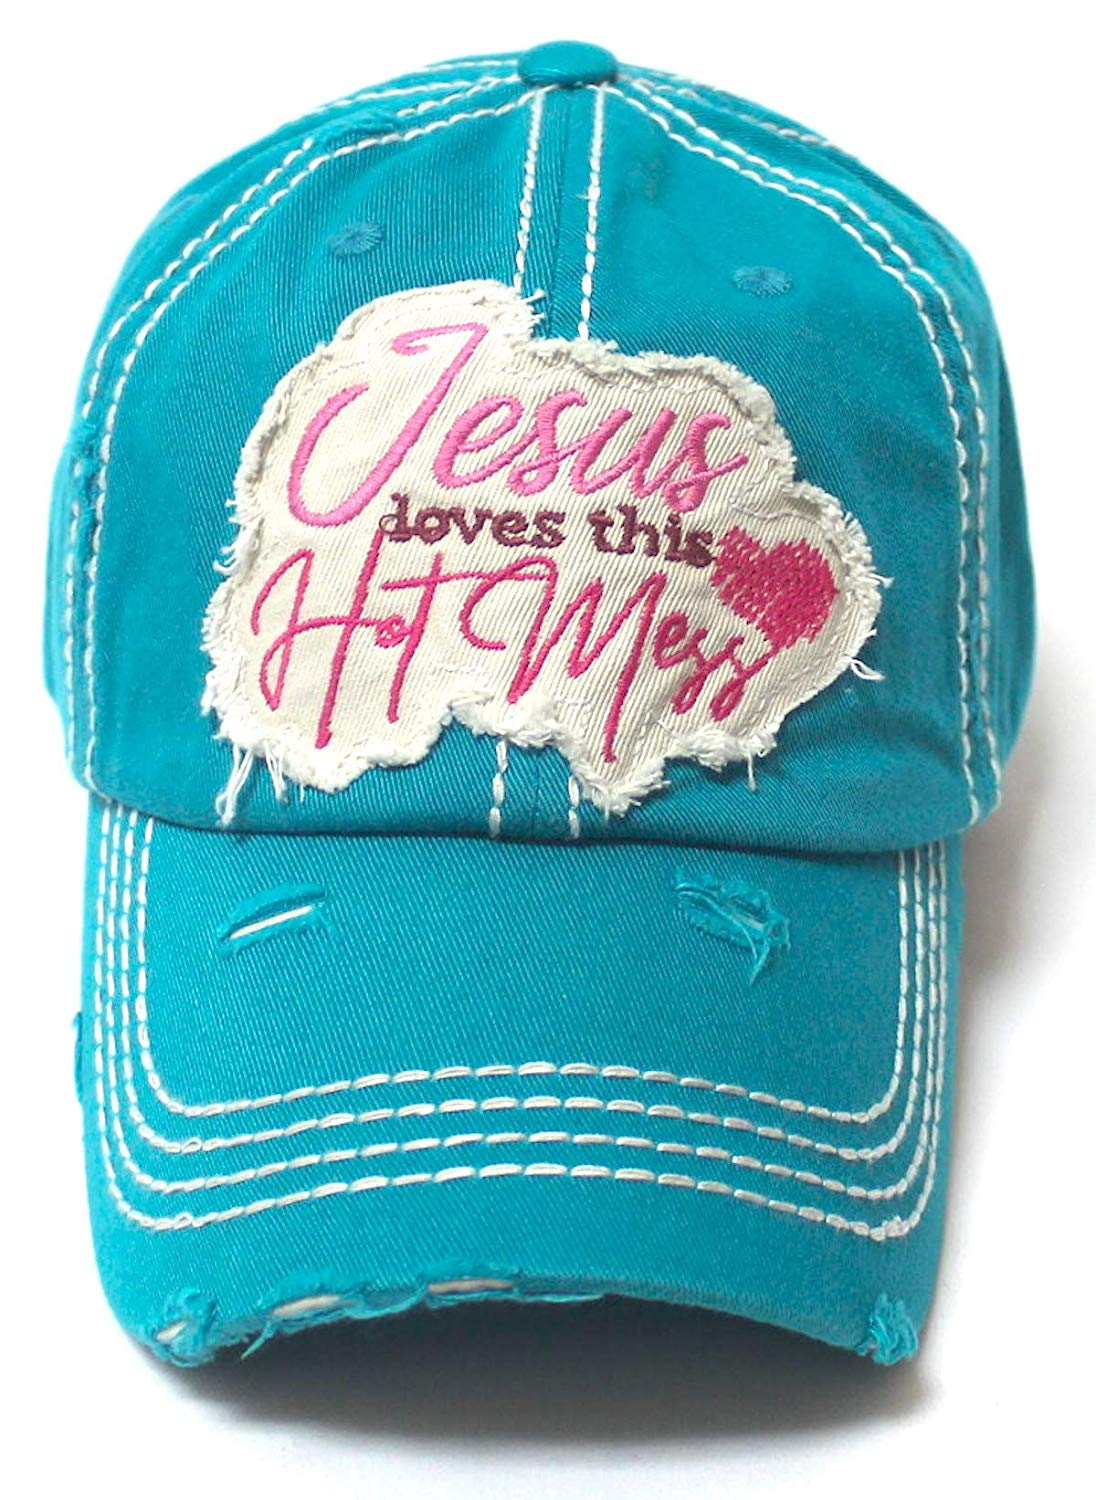 Women's Baseball Cap Jesus Loves This Hot Mess Heart Patch Embroidery Hat, Turquoise Jewel - Caps 'N Vintage